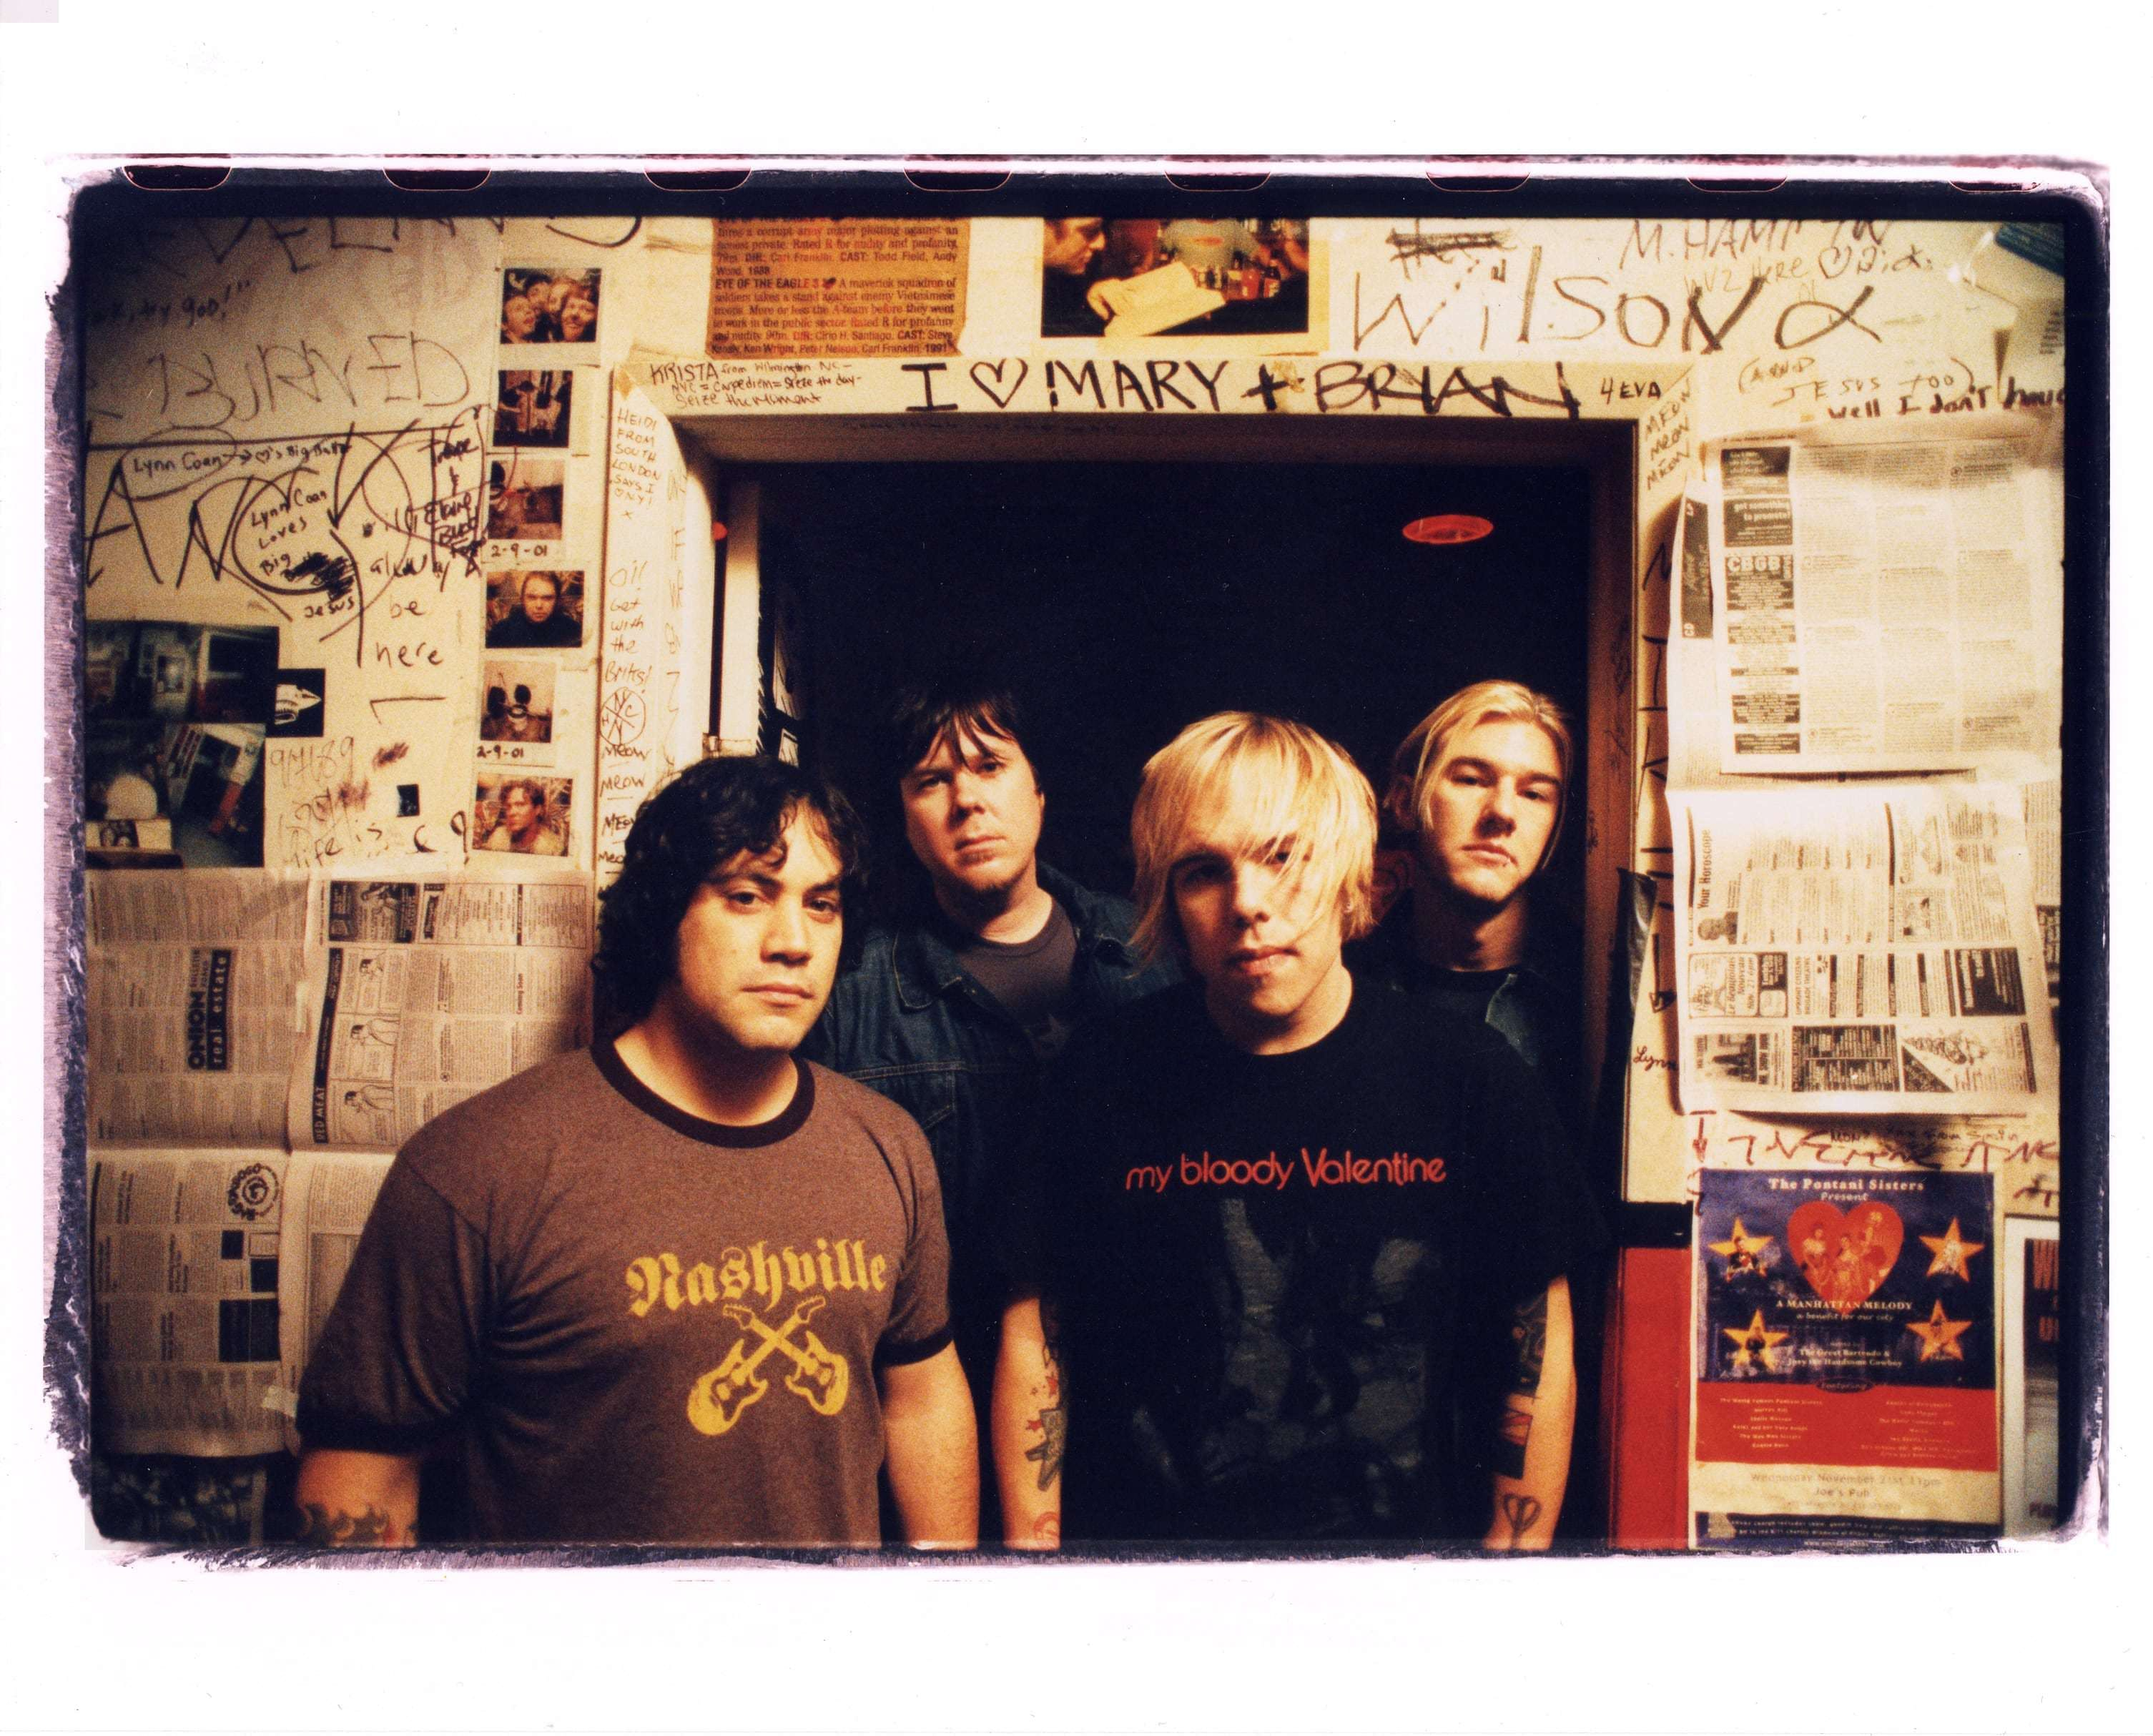 Former Ataris Bassist Michael Davenport Indicted On Conspiracy And Fraud Charges